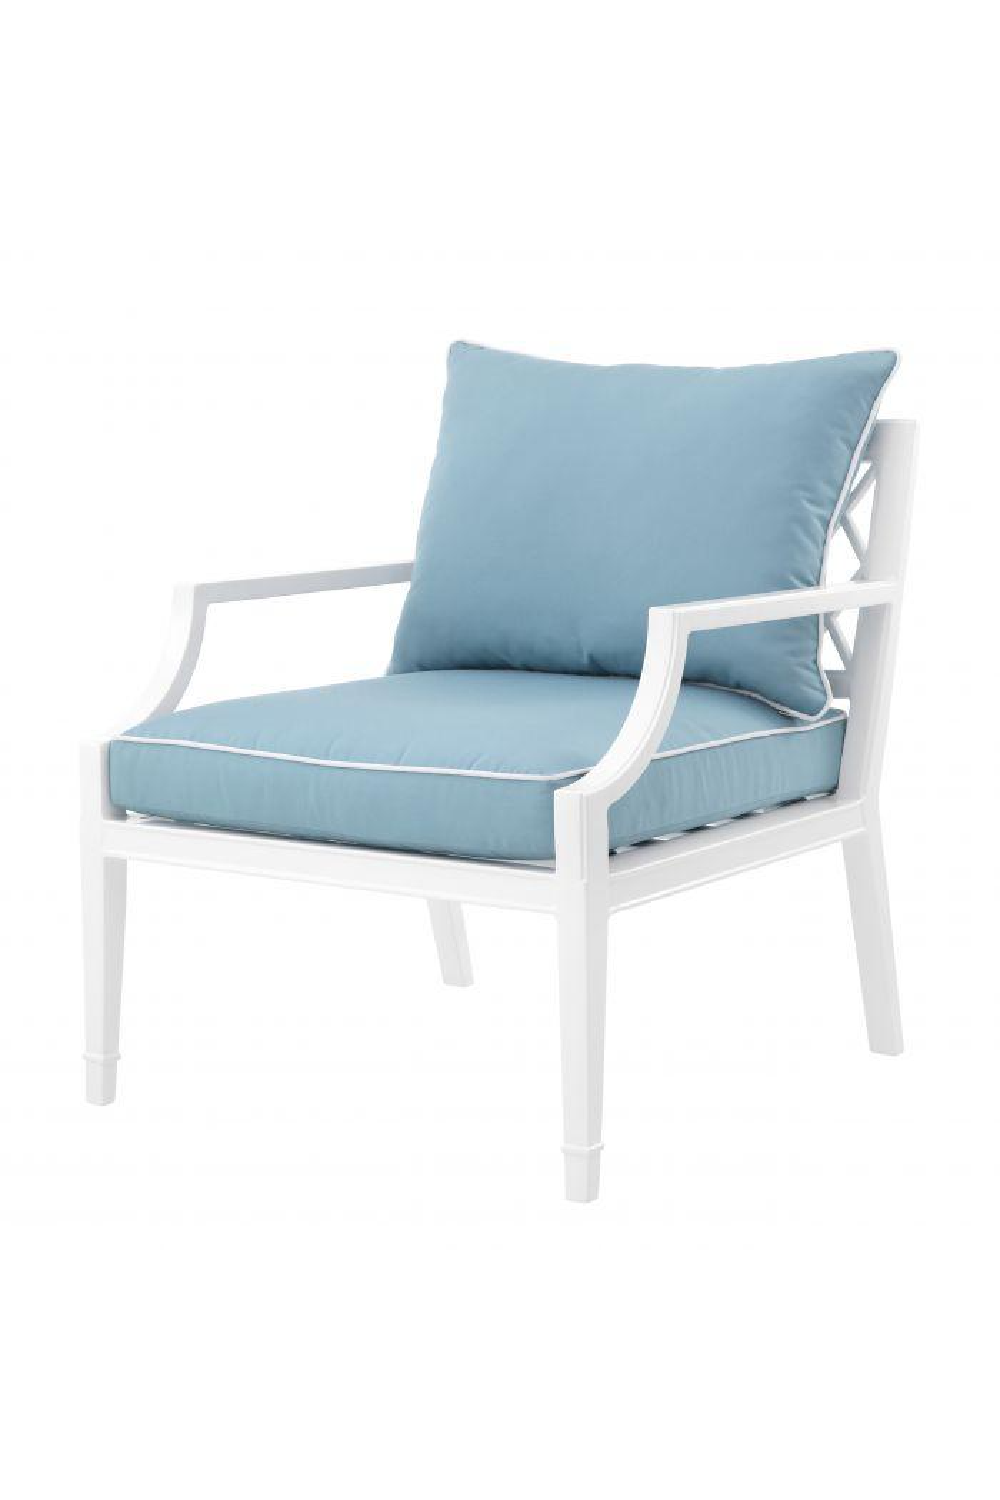 White Outdoor Sunbrella Chair | Eichholtz Bella Vista